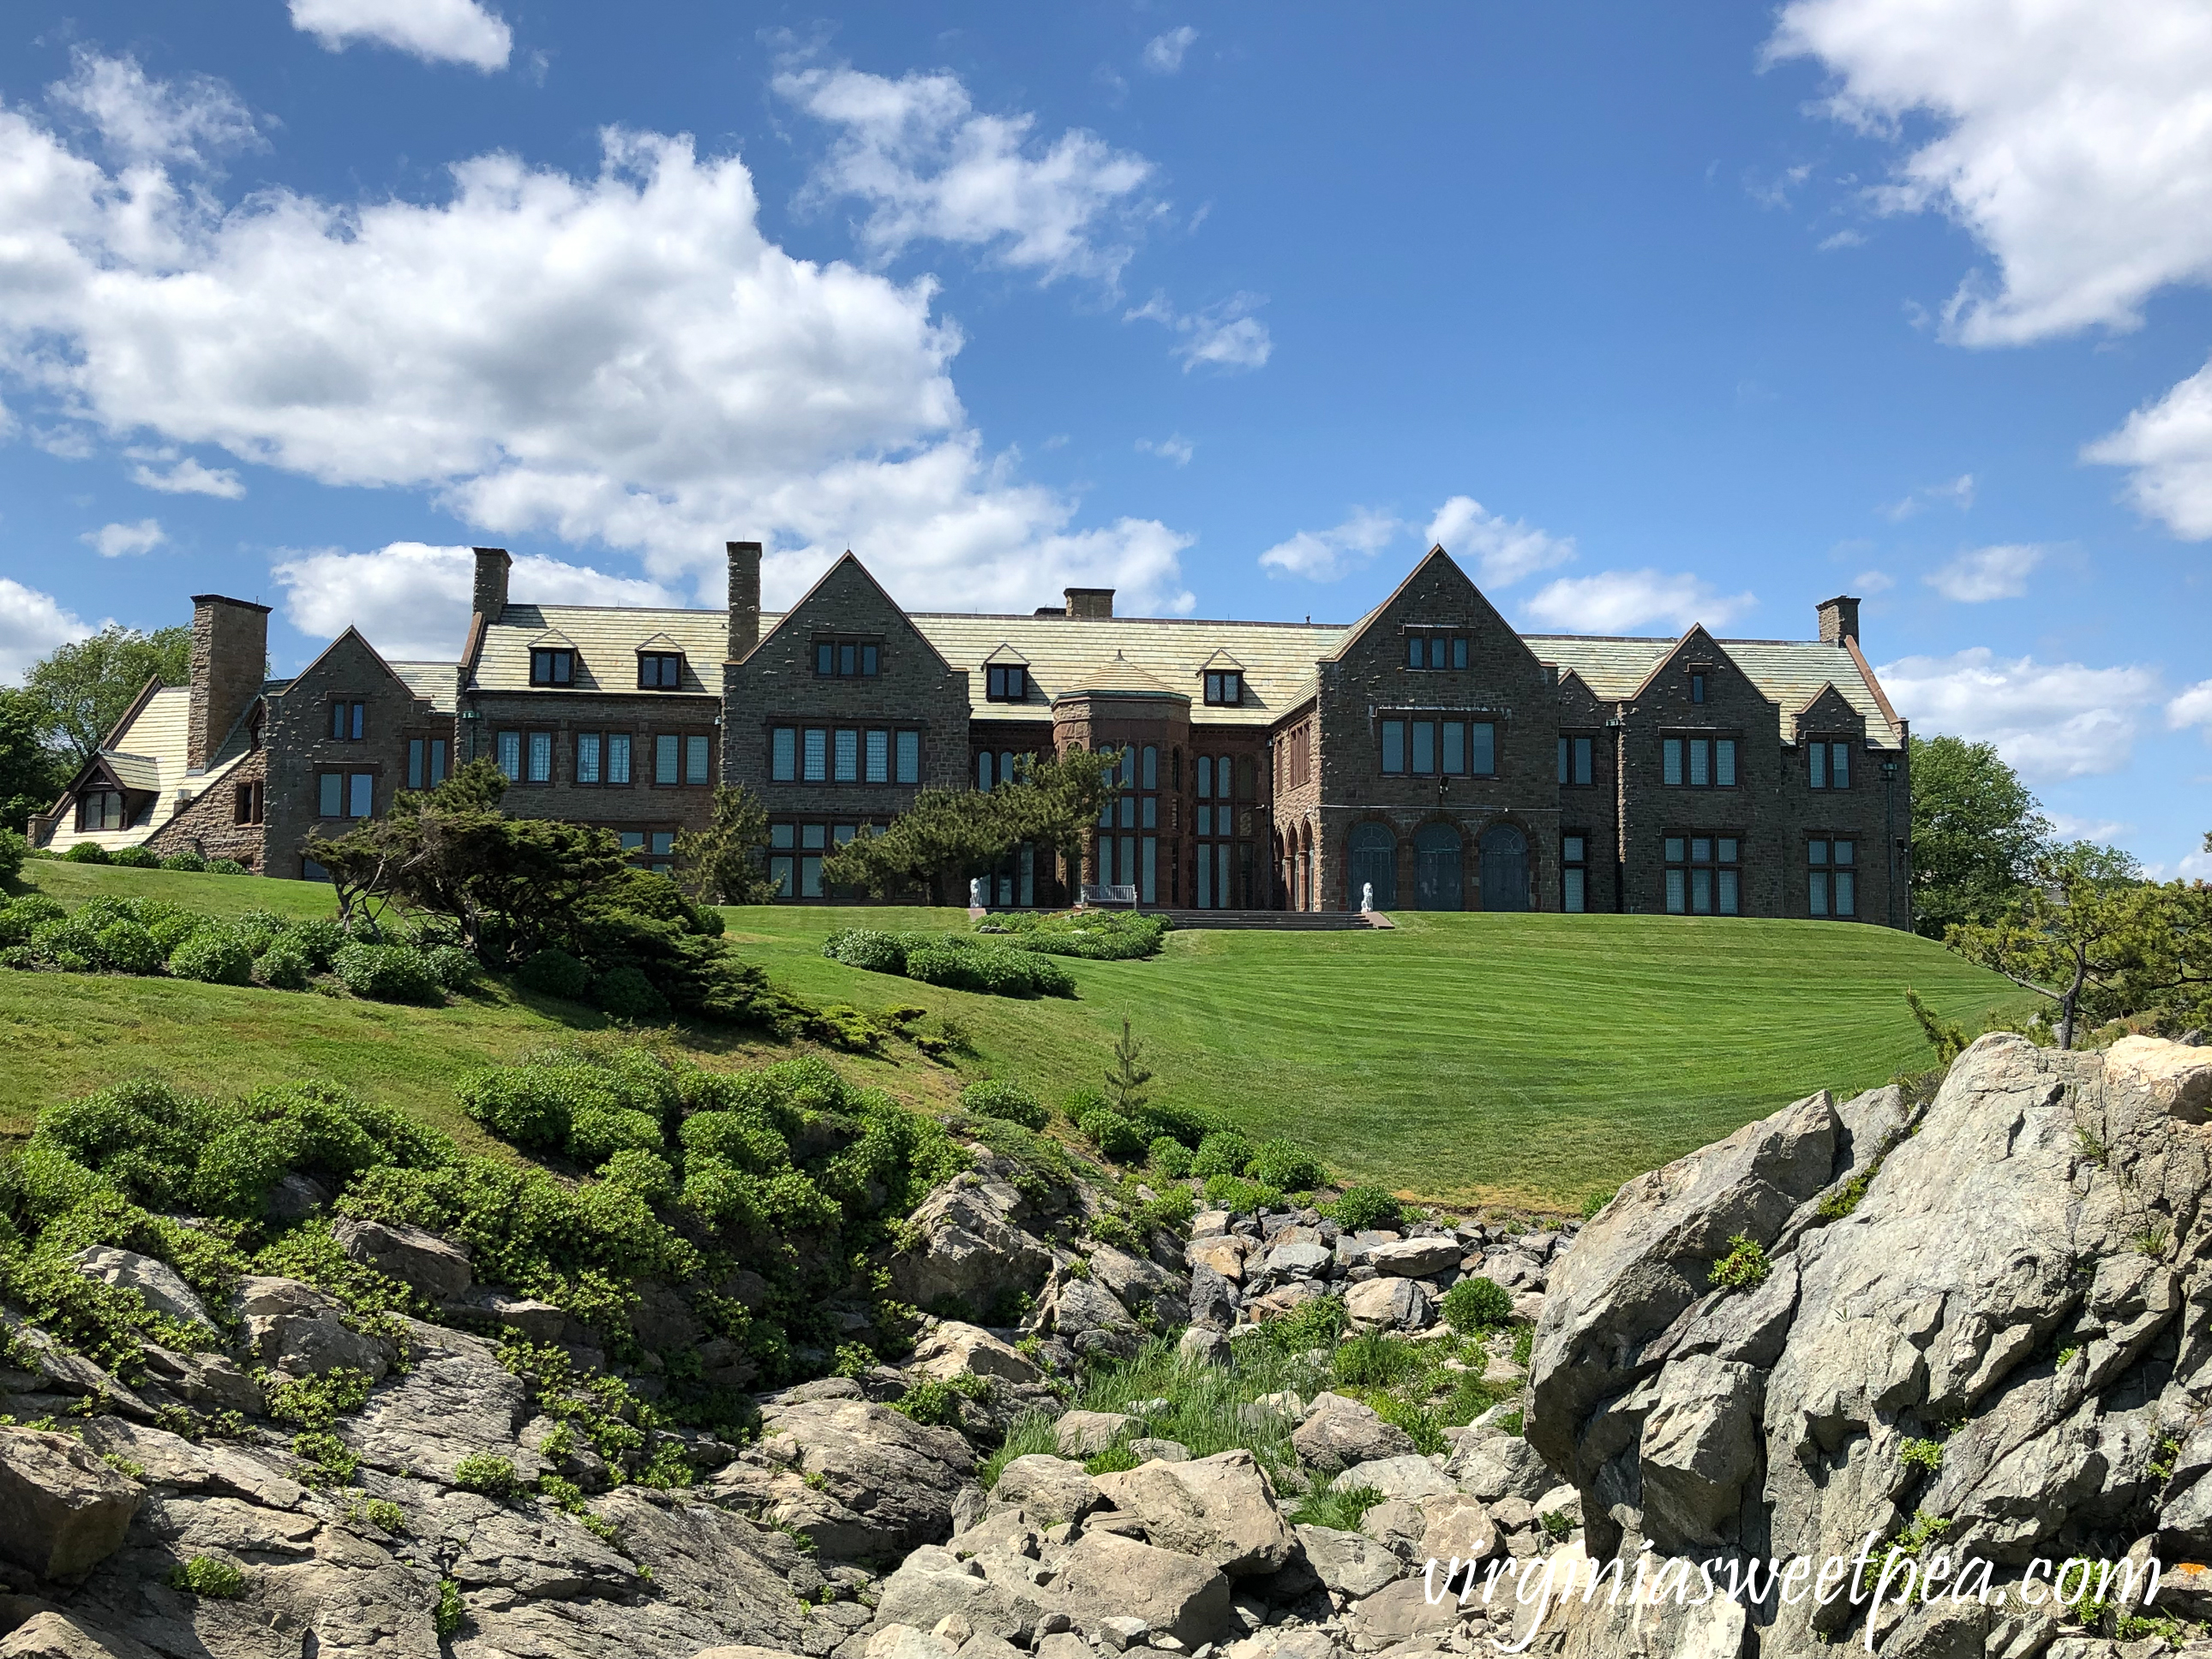 View of Rough Point, the oceanside estate of Doris Duke, in Newport, RI